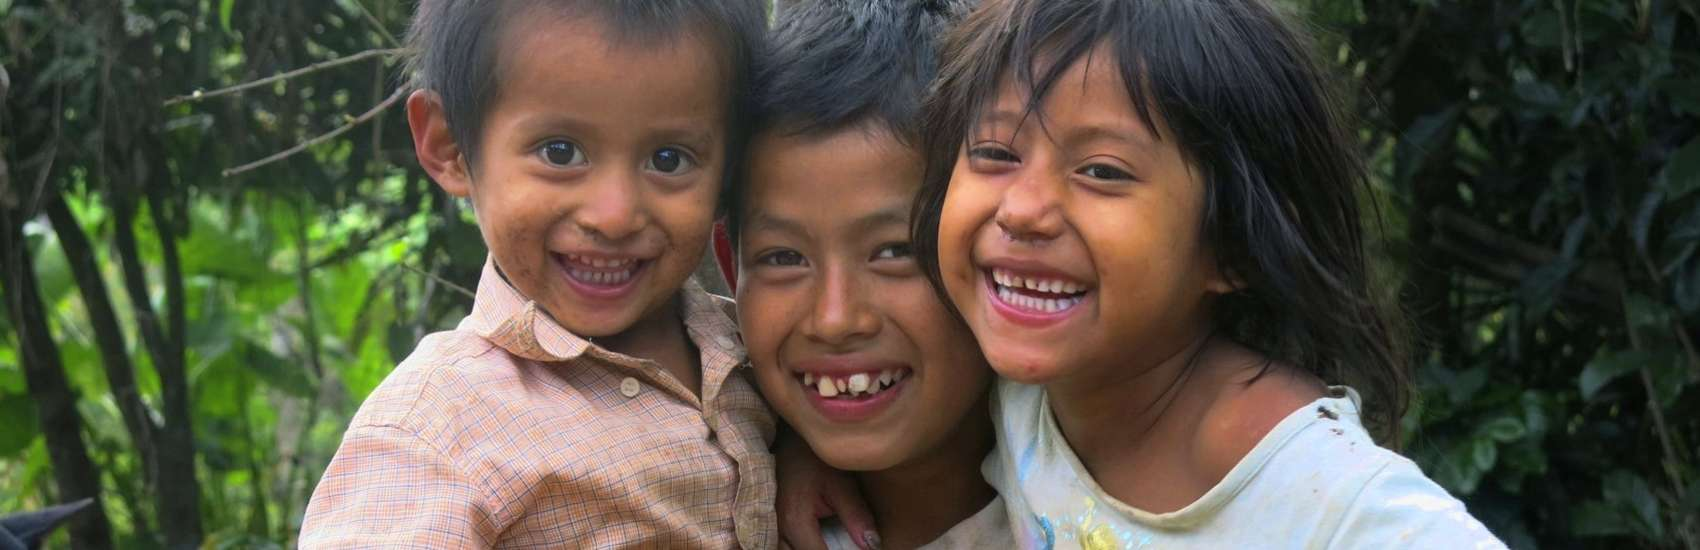 Kevin (age 11) with two of his seven siblings. The nine children are being raised by a single mother, their father left. Kevin is no longer at school as his mother can't afford the costs. He helps his mother when he can, picking tomatoes or cutting coffee if they can find work due to the coffee rust – a blight that is killing coffee plants. The younger siblings are losing weight; the youngest has severe diarrhea due to poor hygiene and no sanitation. Save the Children Honduras is helping this family with bananas and other emergency food packages. Photo credit: Save the Children, June 2014.